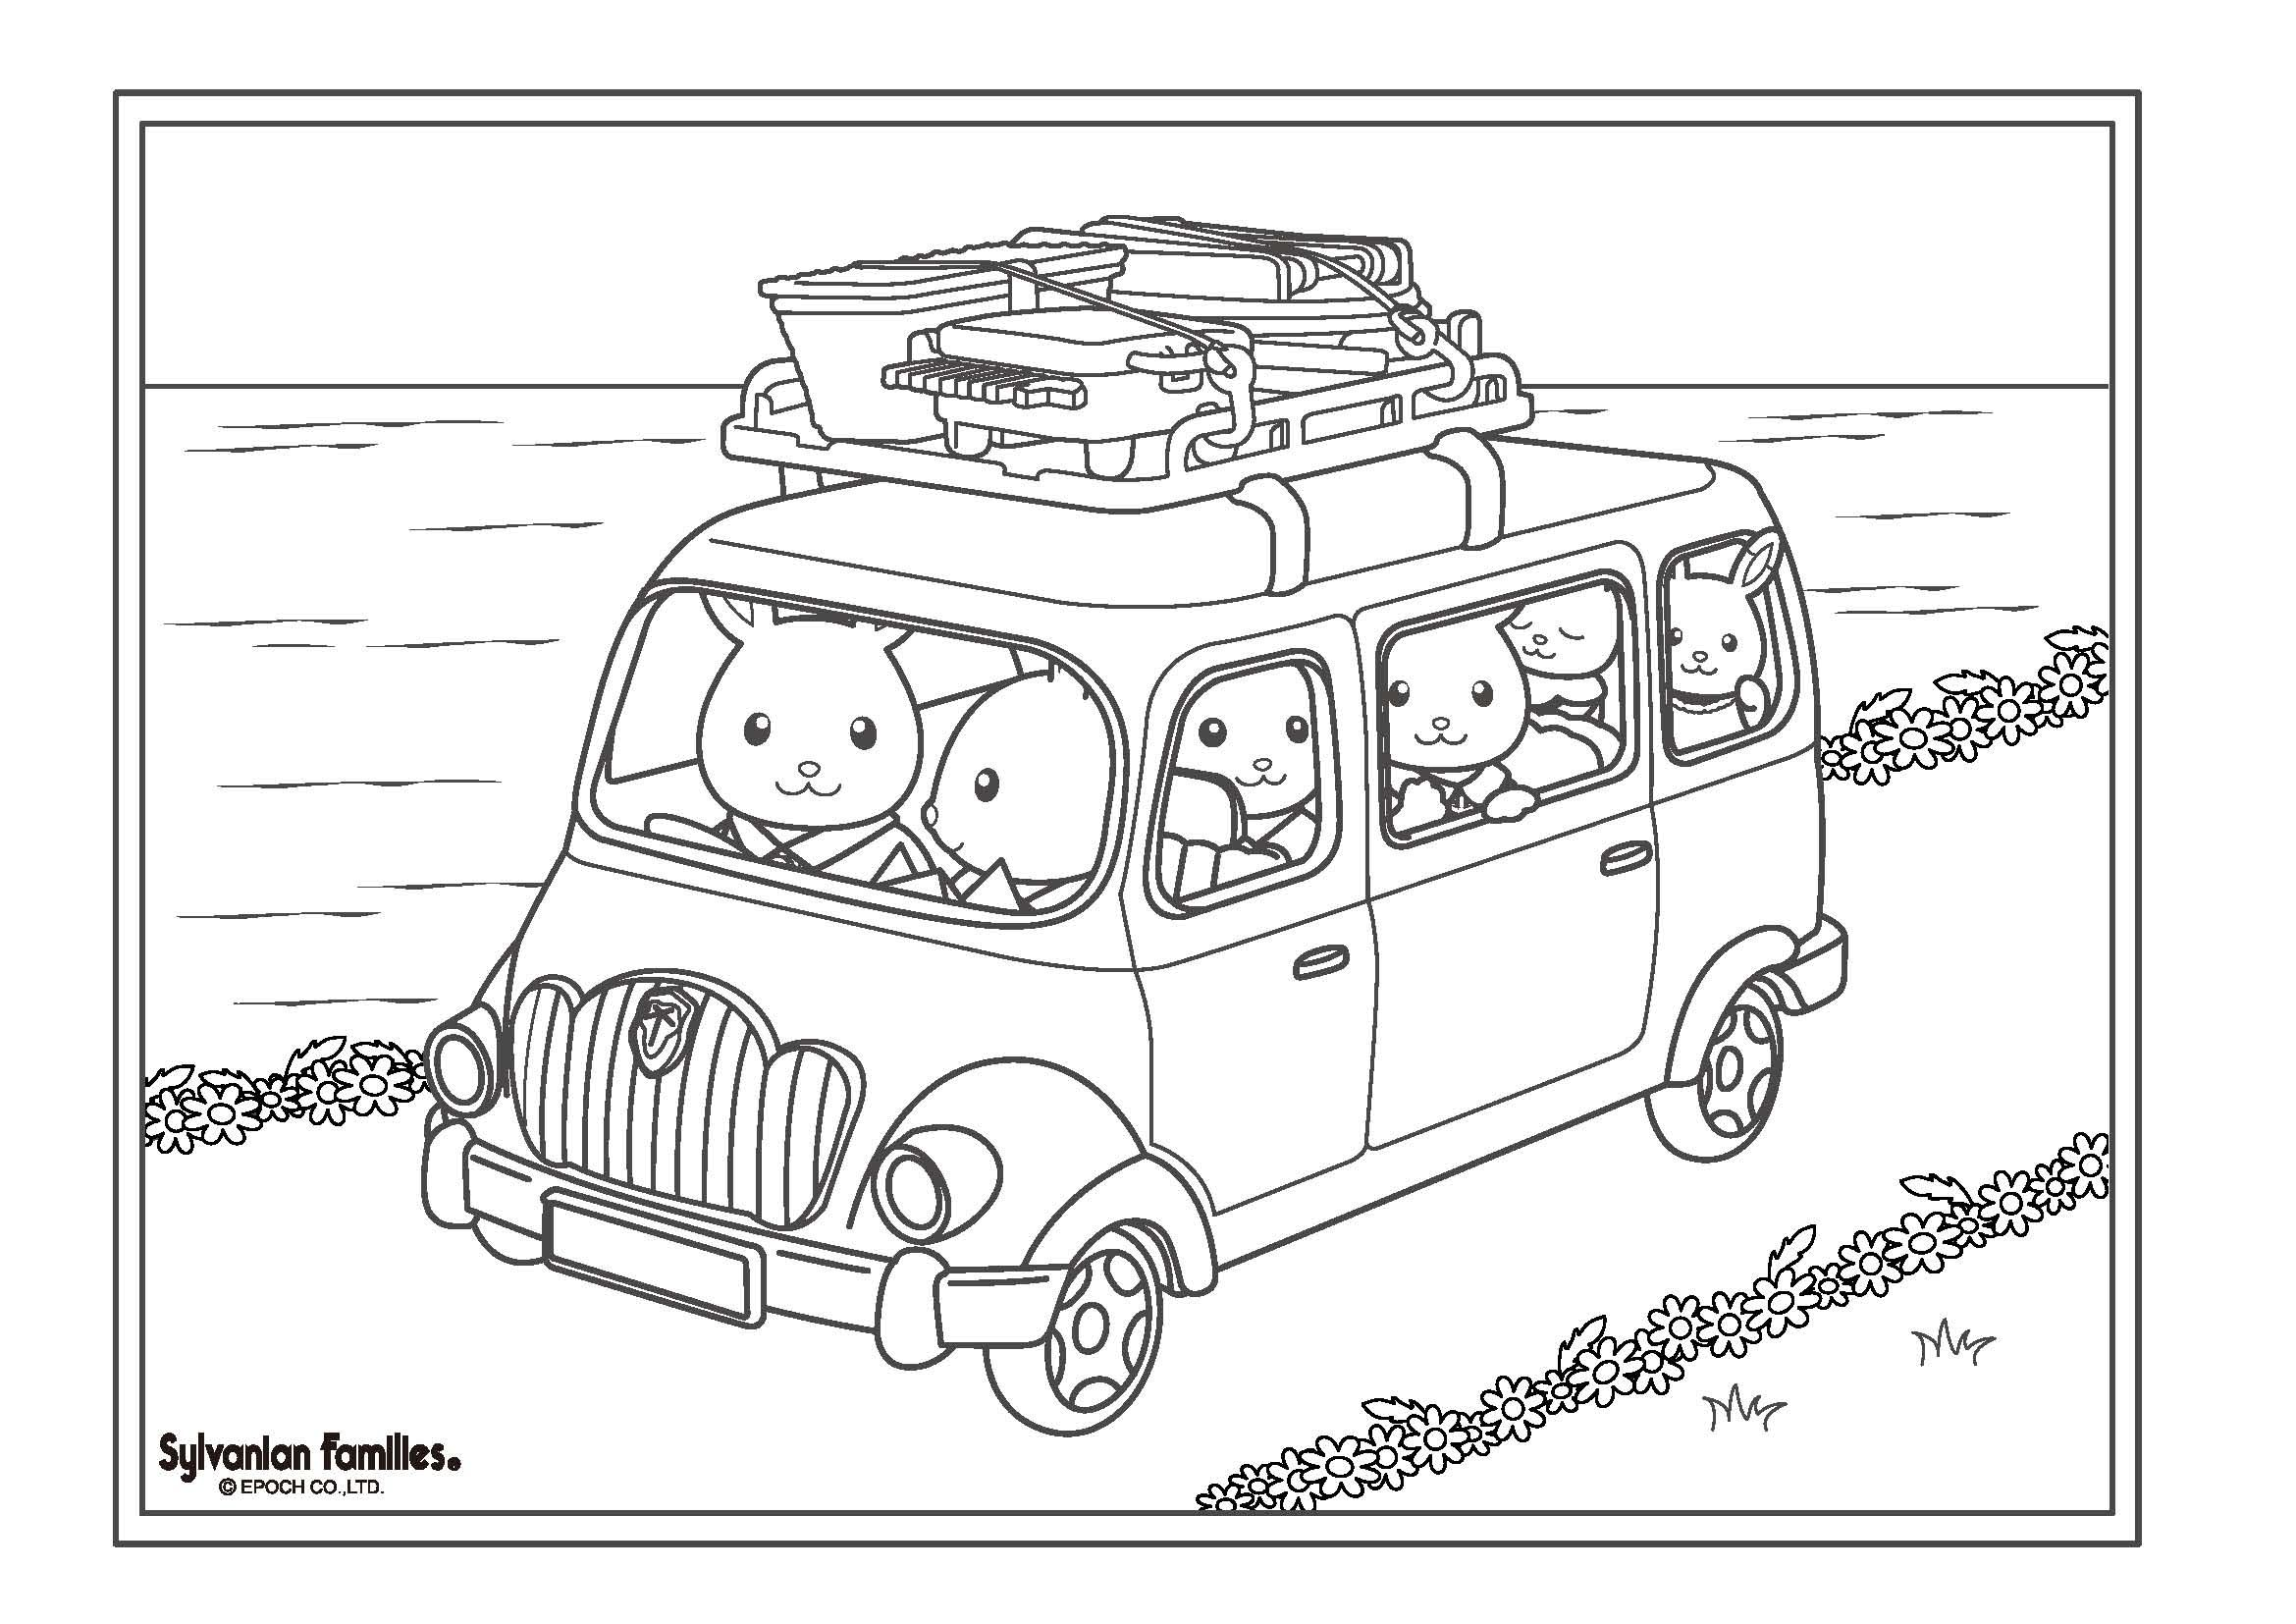 17 Coloring Pages Of Calico Critters On Kids N Fun Co Uk On Kids N Fun You Will Always Find The Bes Coloring Books Family Coloring Pages Animal Coloring Books